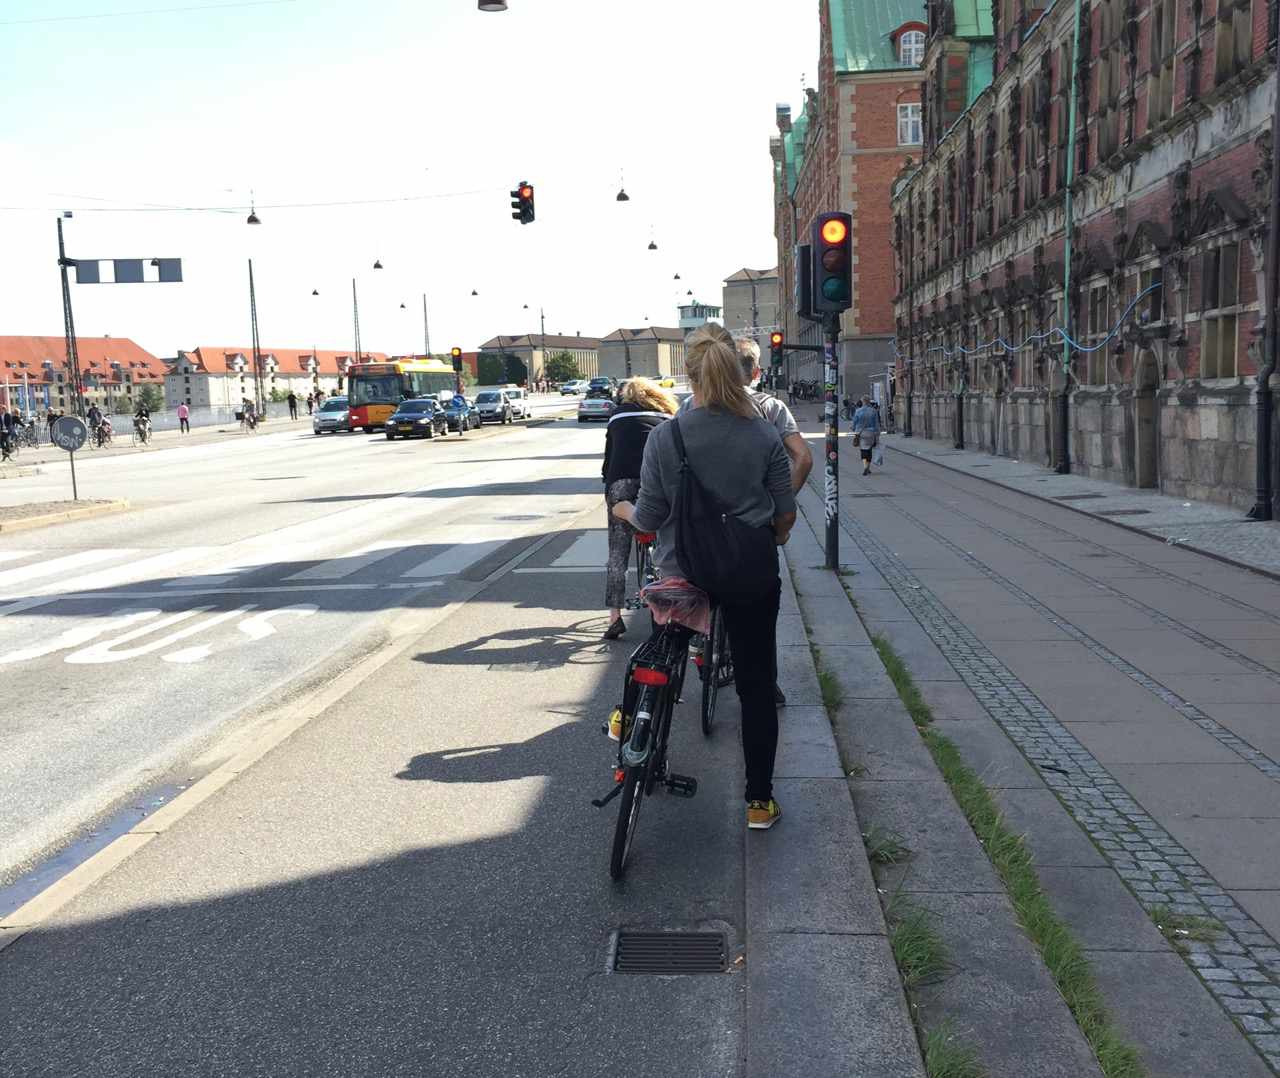 cyclists at red light in Copenhagen